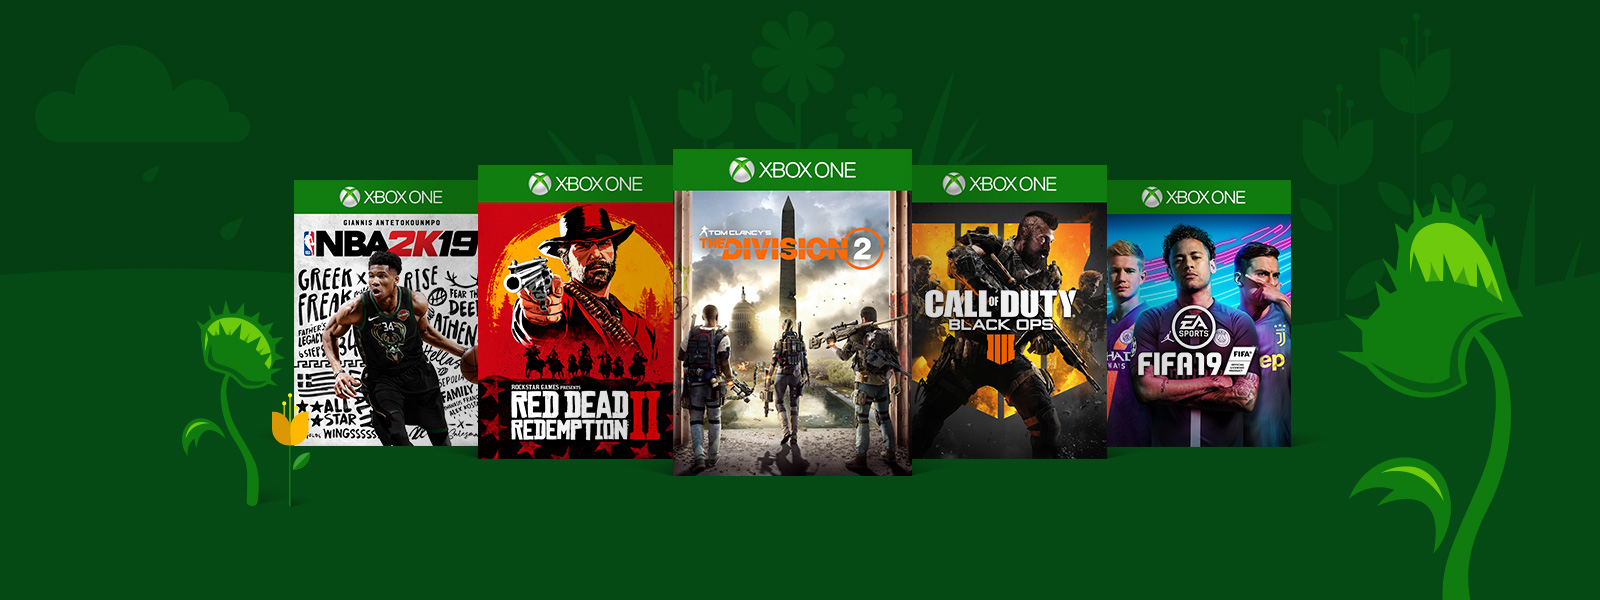 A collage of Xbox One game boxes on a green background with snapping venus fly traps. Featured games are Red Dead Redemption 2, Tom Clancy's The Division 2, and Call of Duty: Black Ops